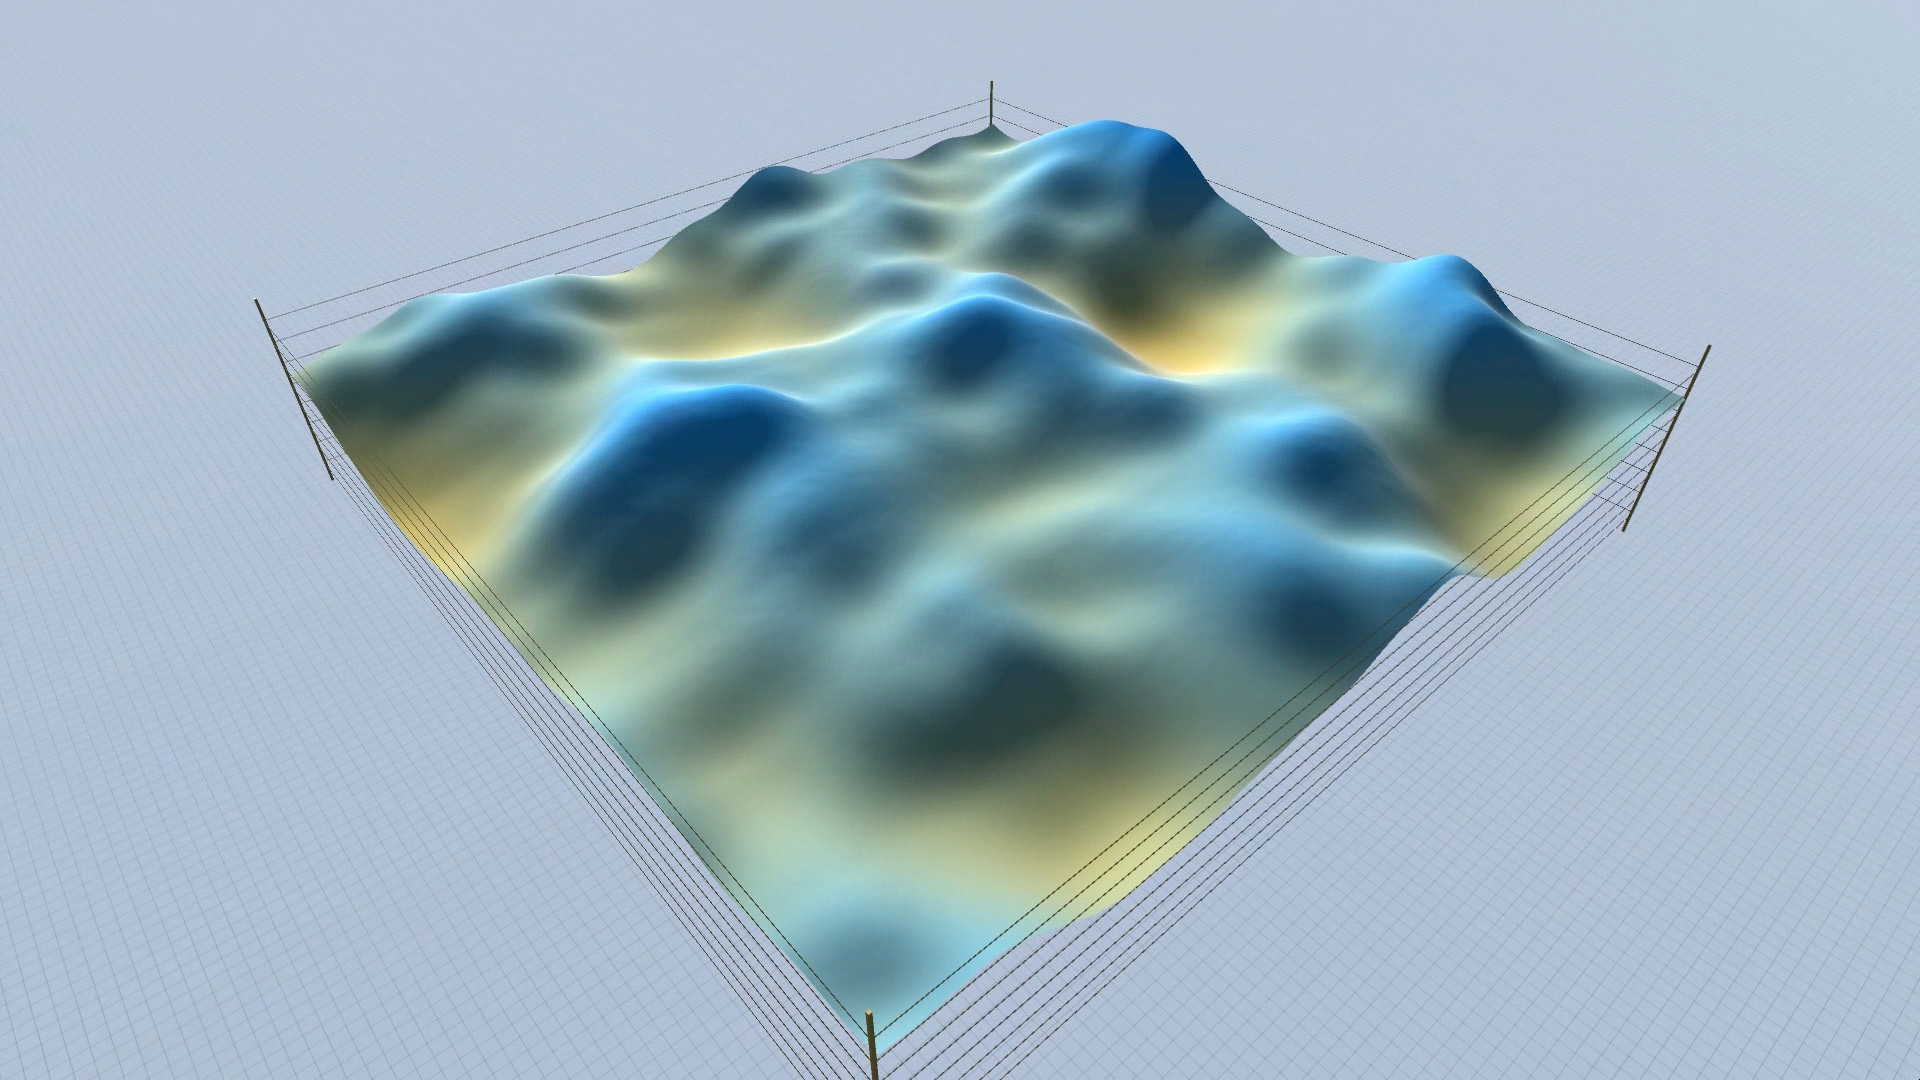 konsfik-procedural-landscape-animated-play-mode-screenshot-9